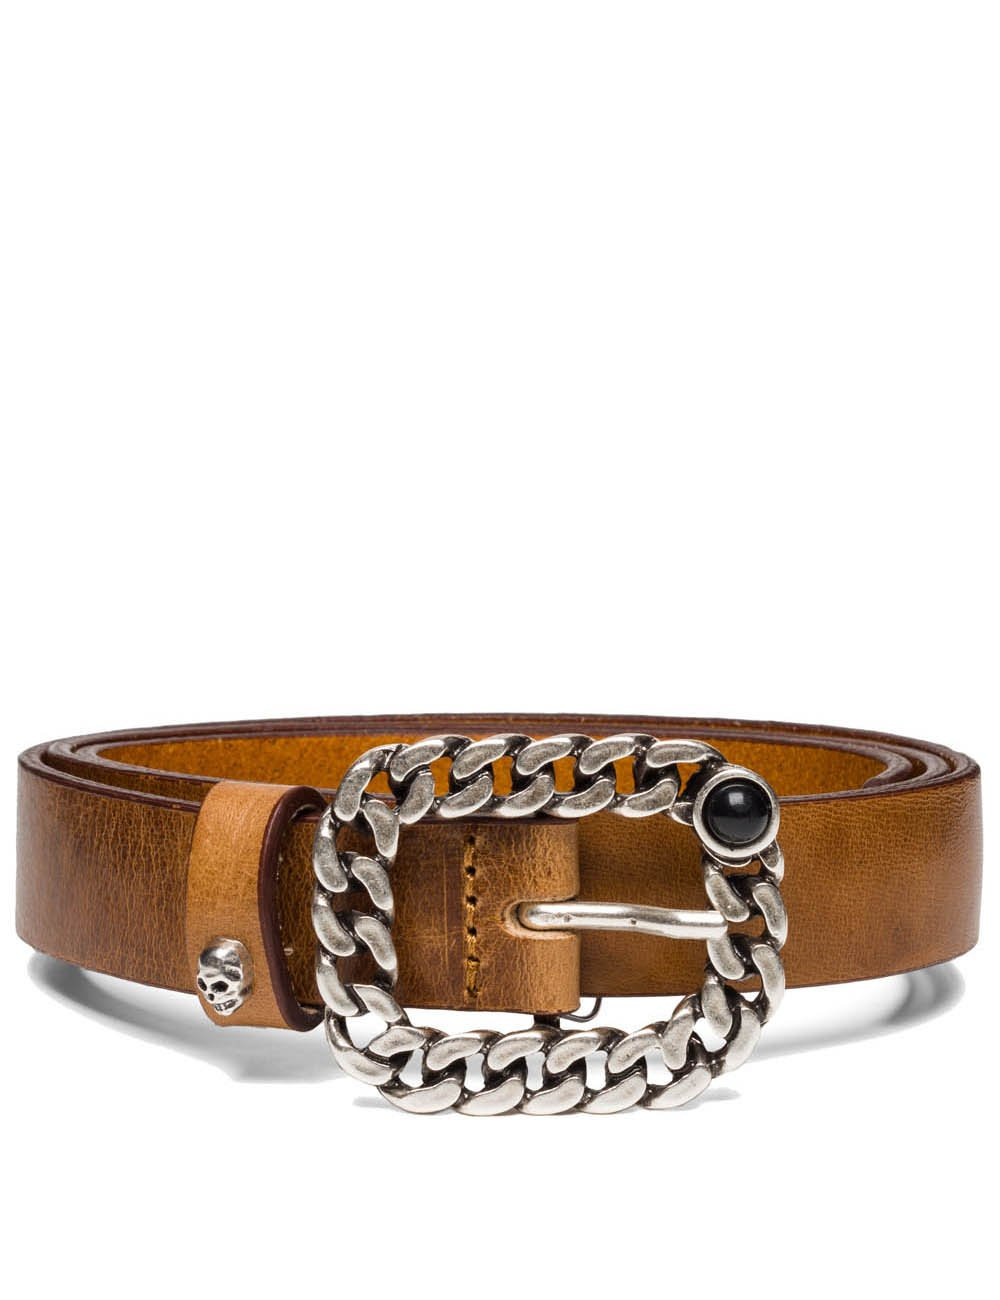 Replay Women's Women's Leather Tan Belt With Chain Buckle in Size 90 Brown